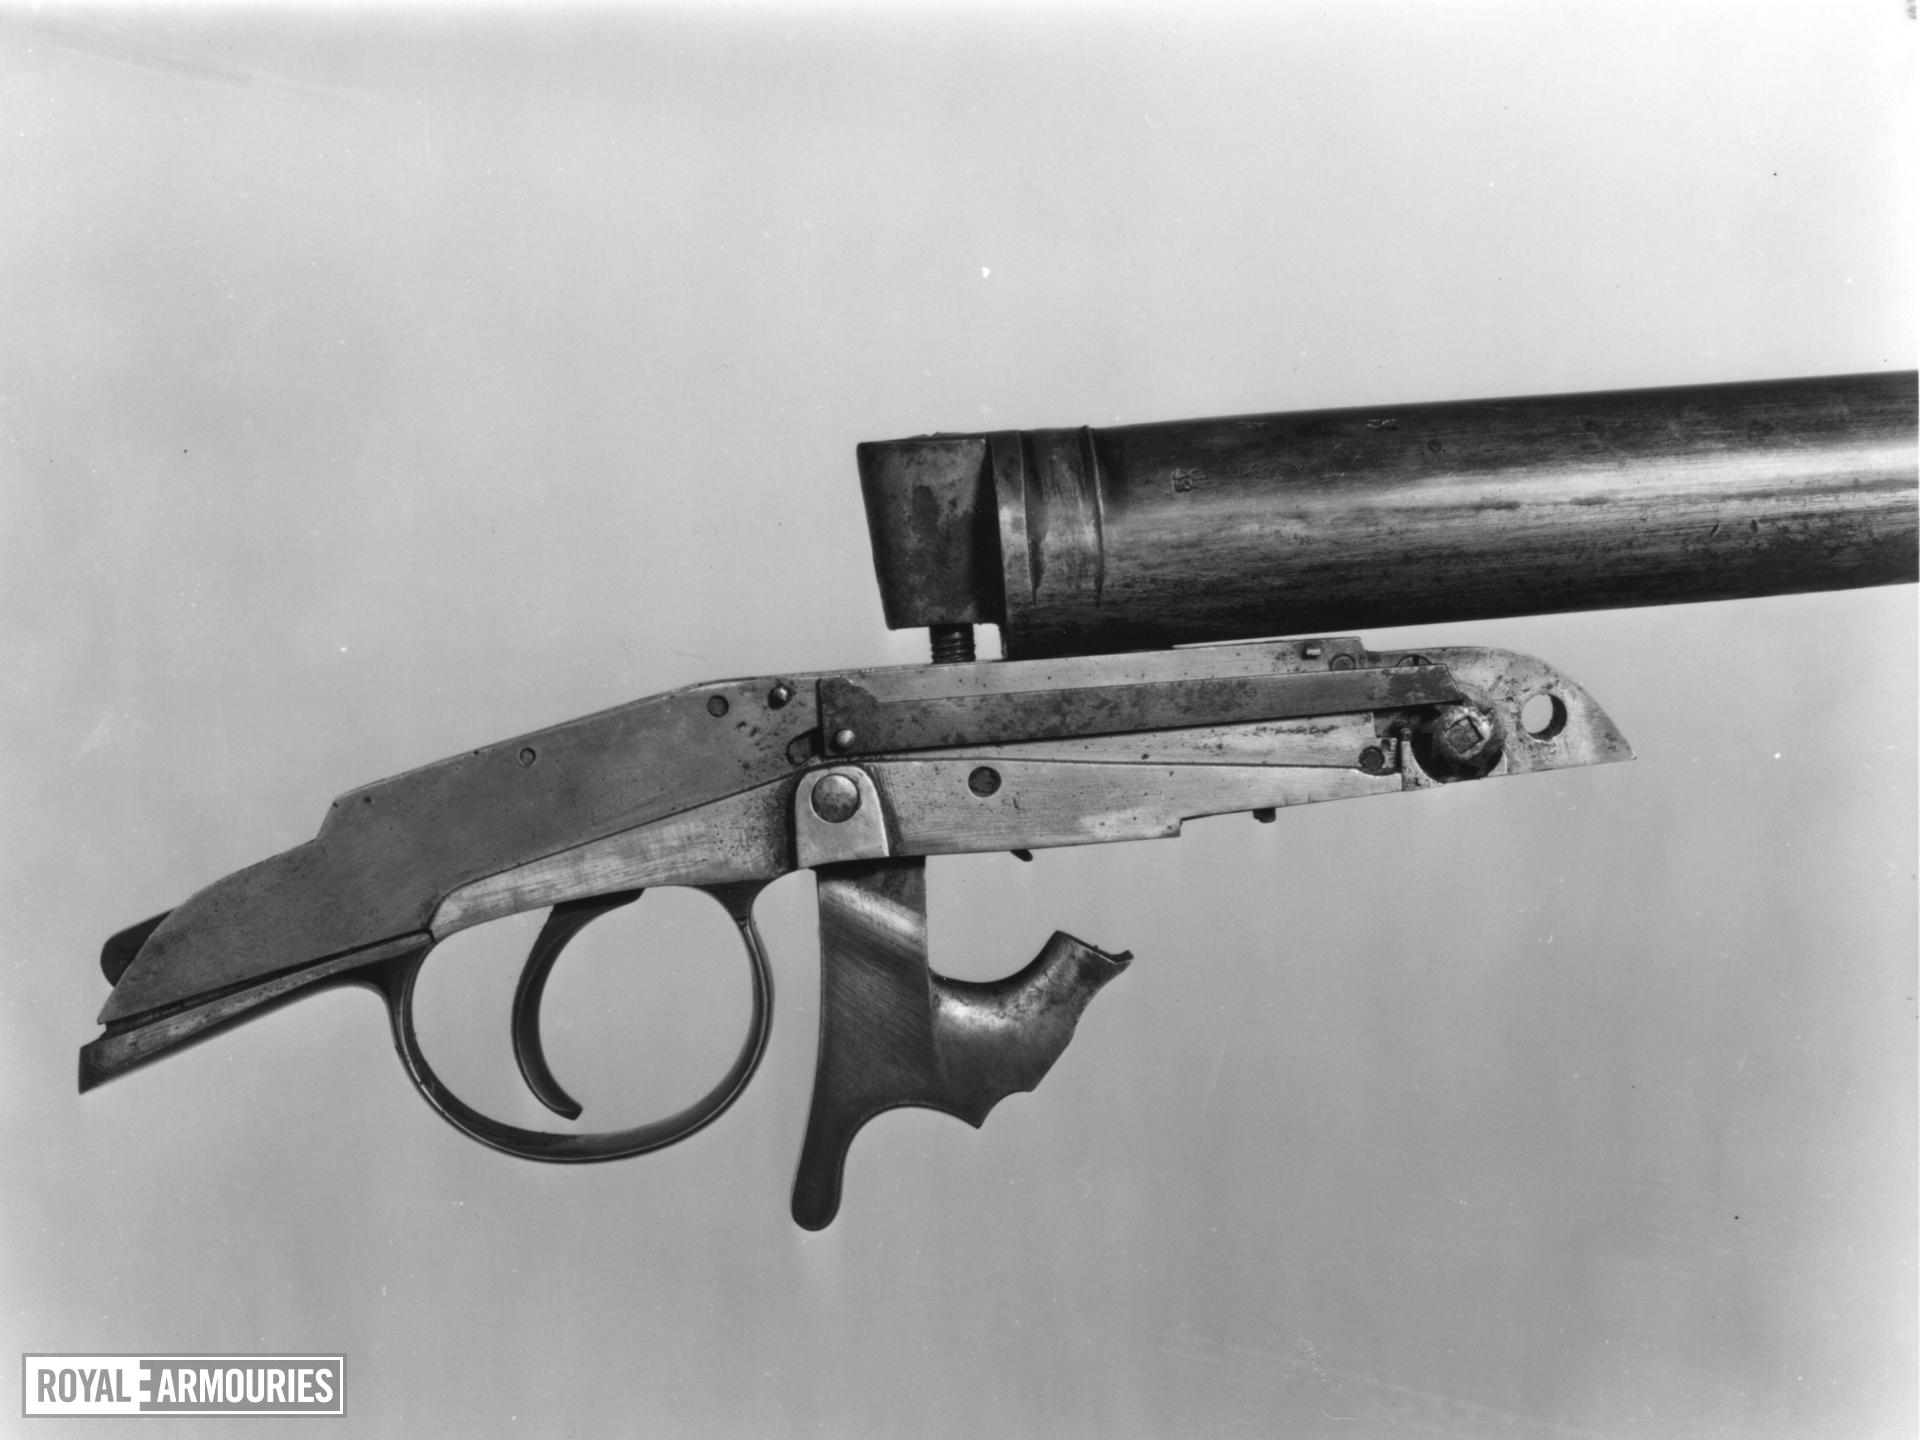 Percussion muzzle-loading musket - Heurteloup Musket Heurteloup design of 1836